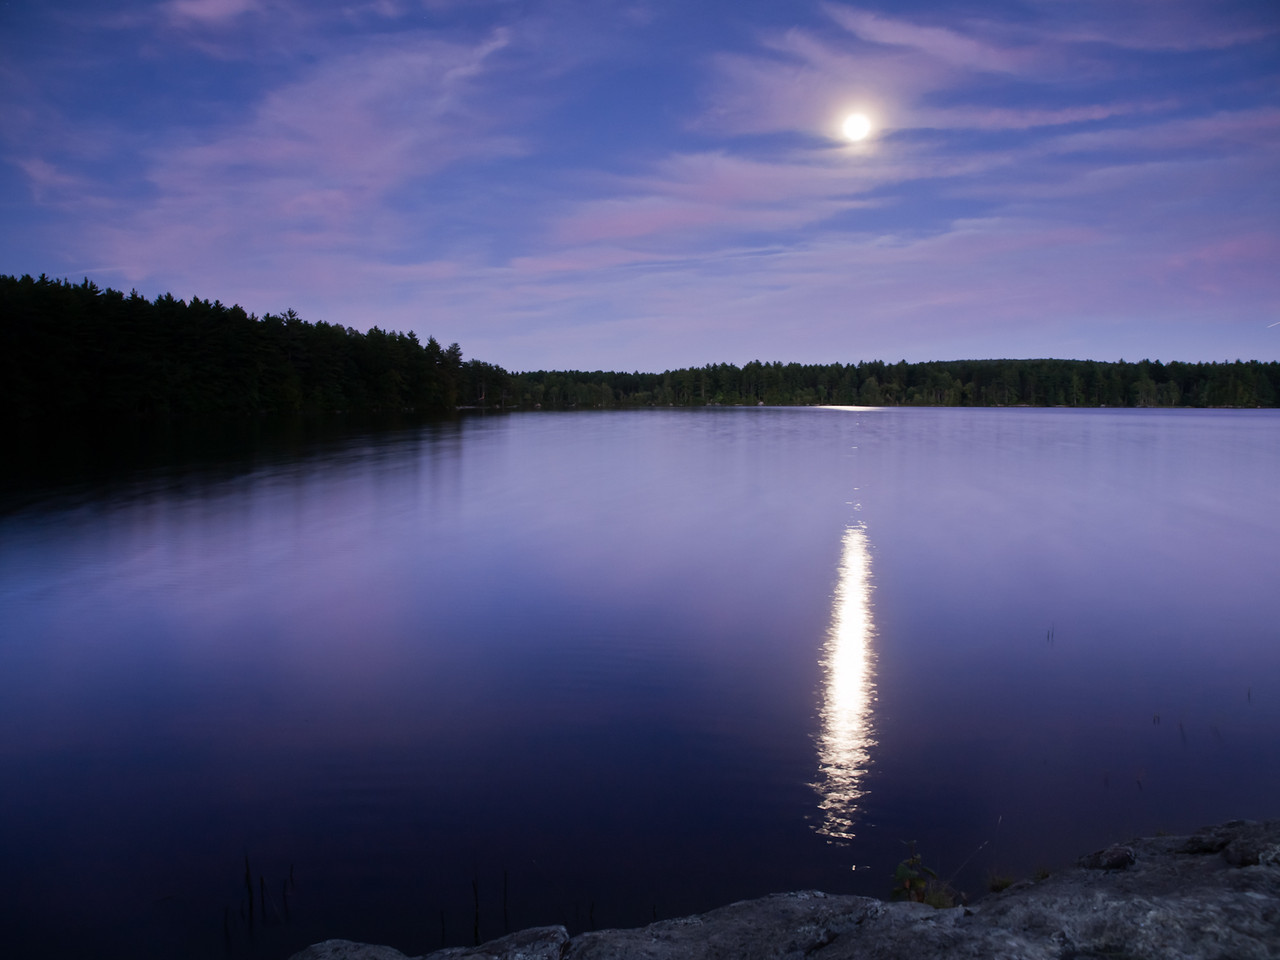 My first long exposure during moonlight is at Lake Massabesic.